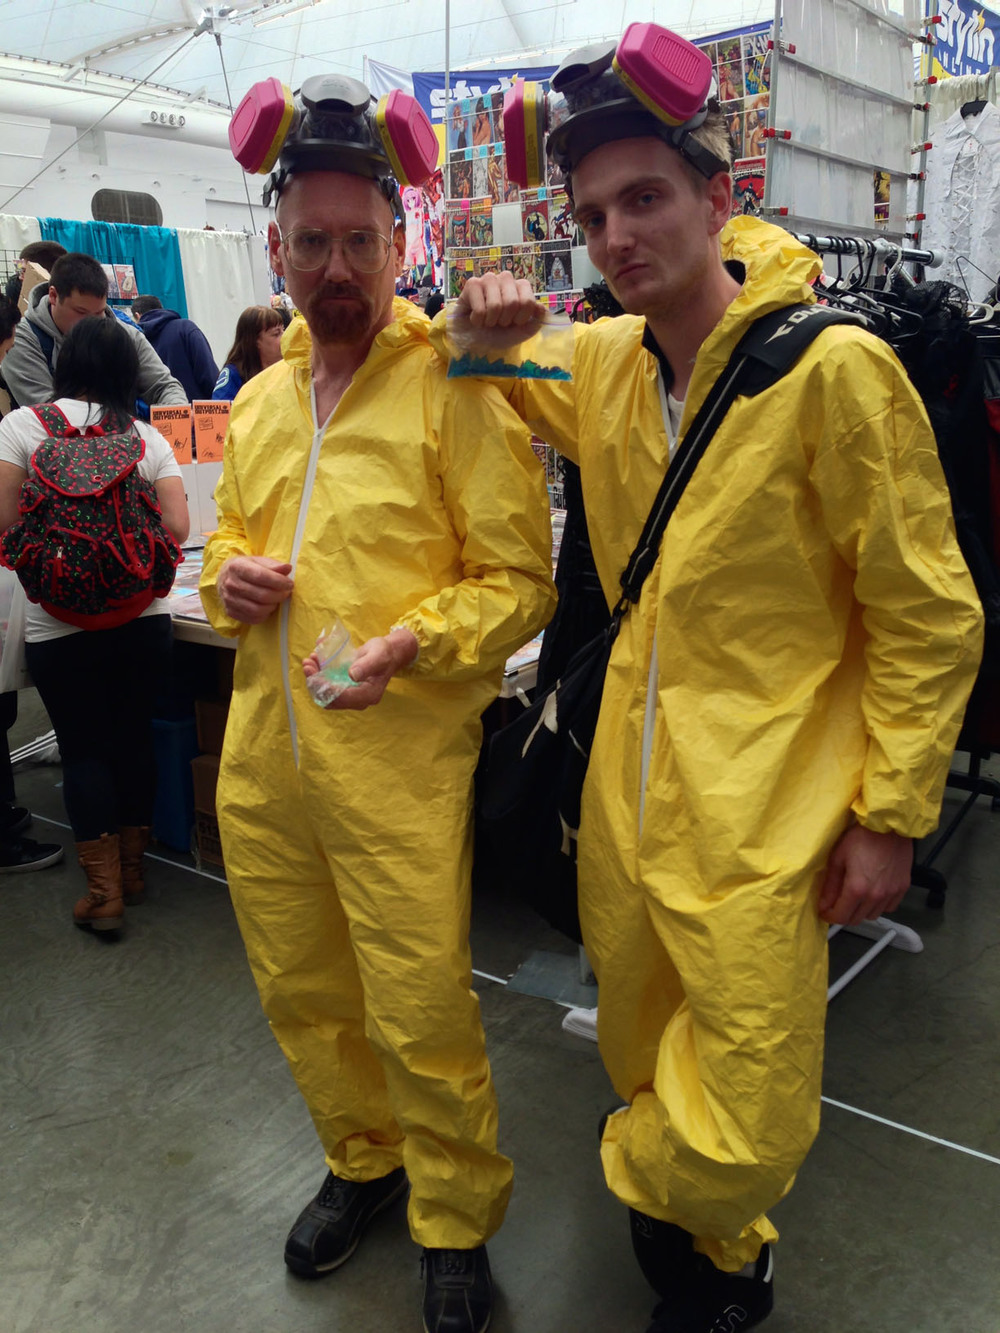 Walter White and Jesse Pinkman (Breaking Bad)